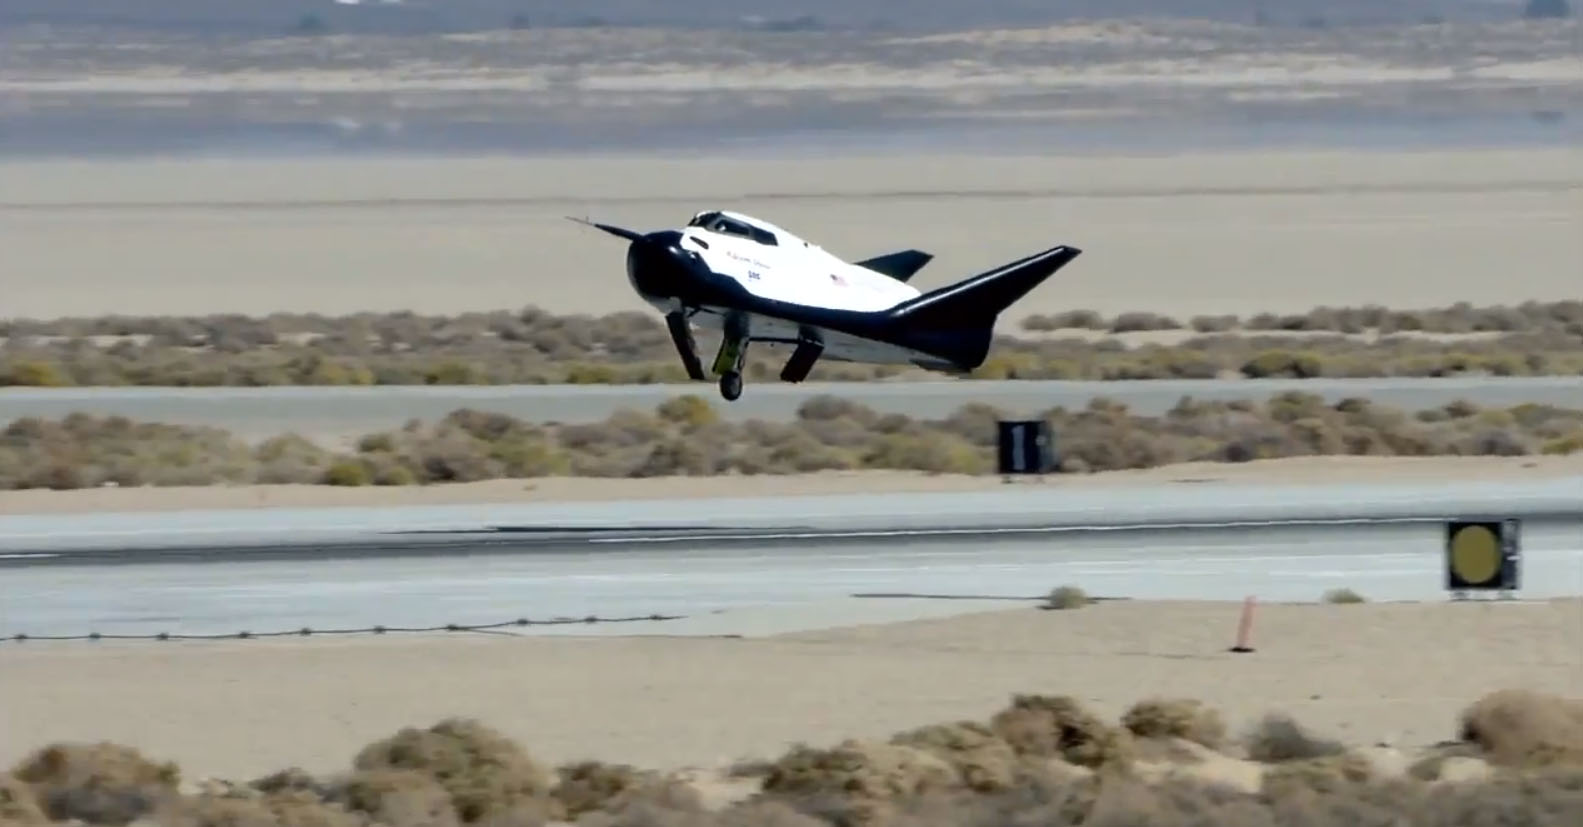 Dream Chaser Drop Test Landing Gear Malfunction